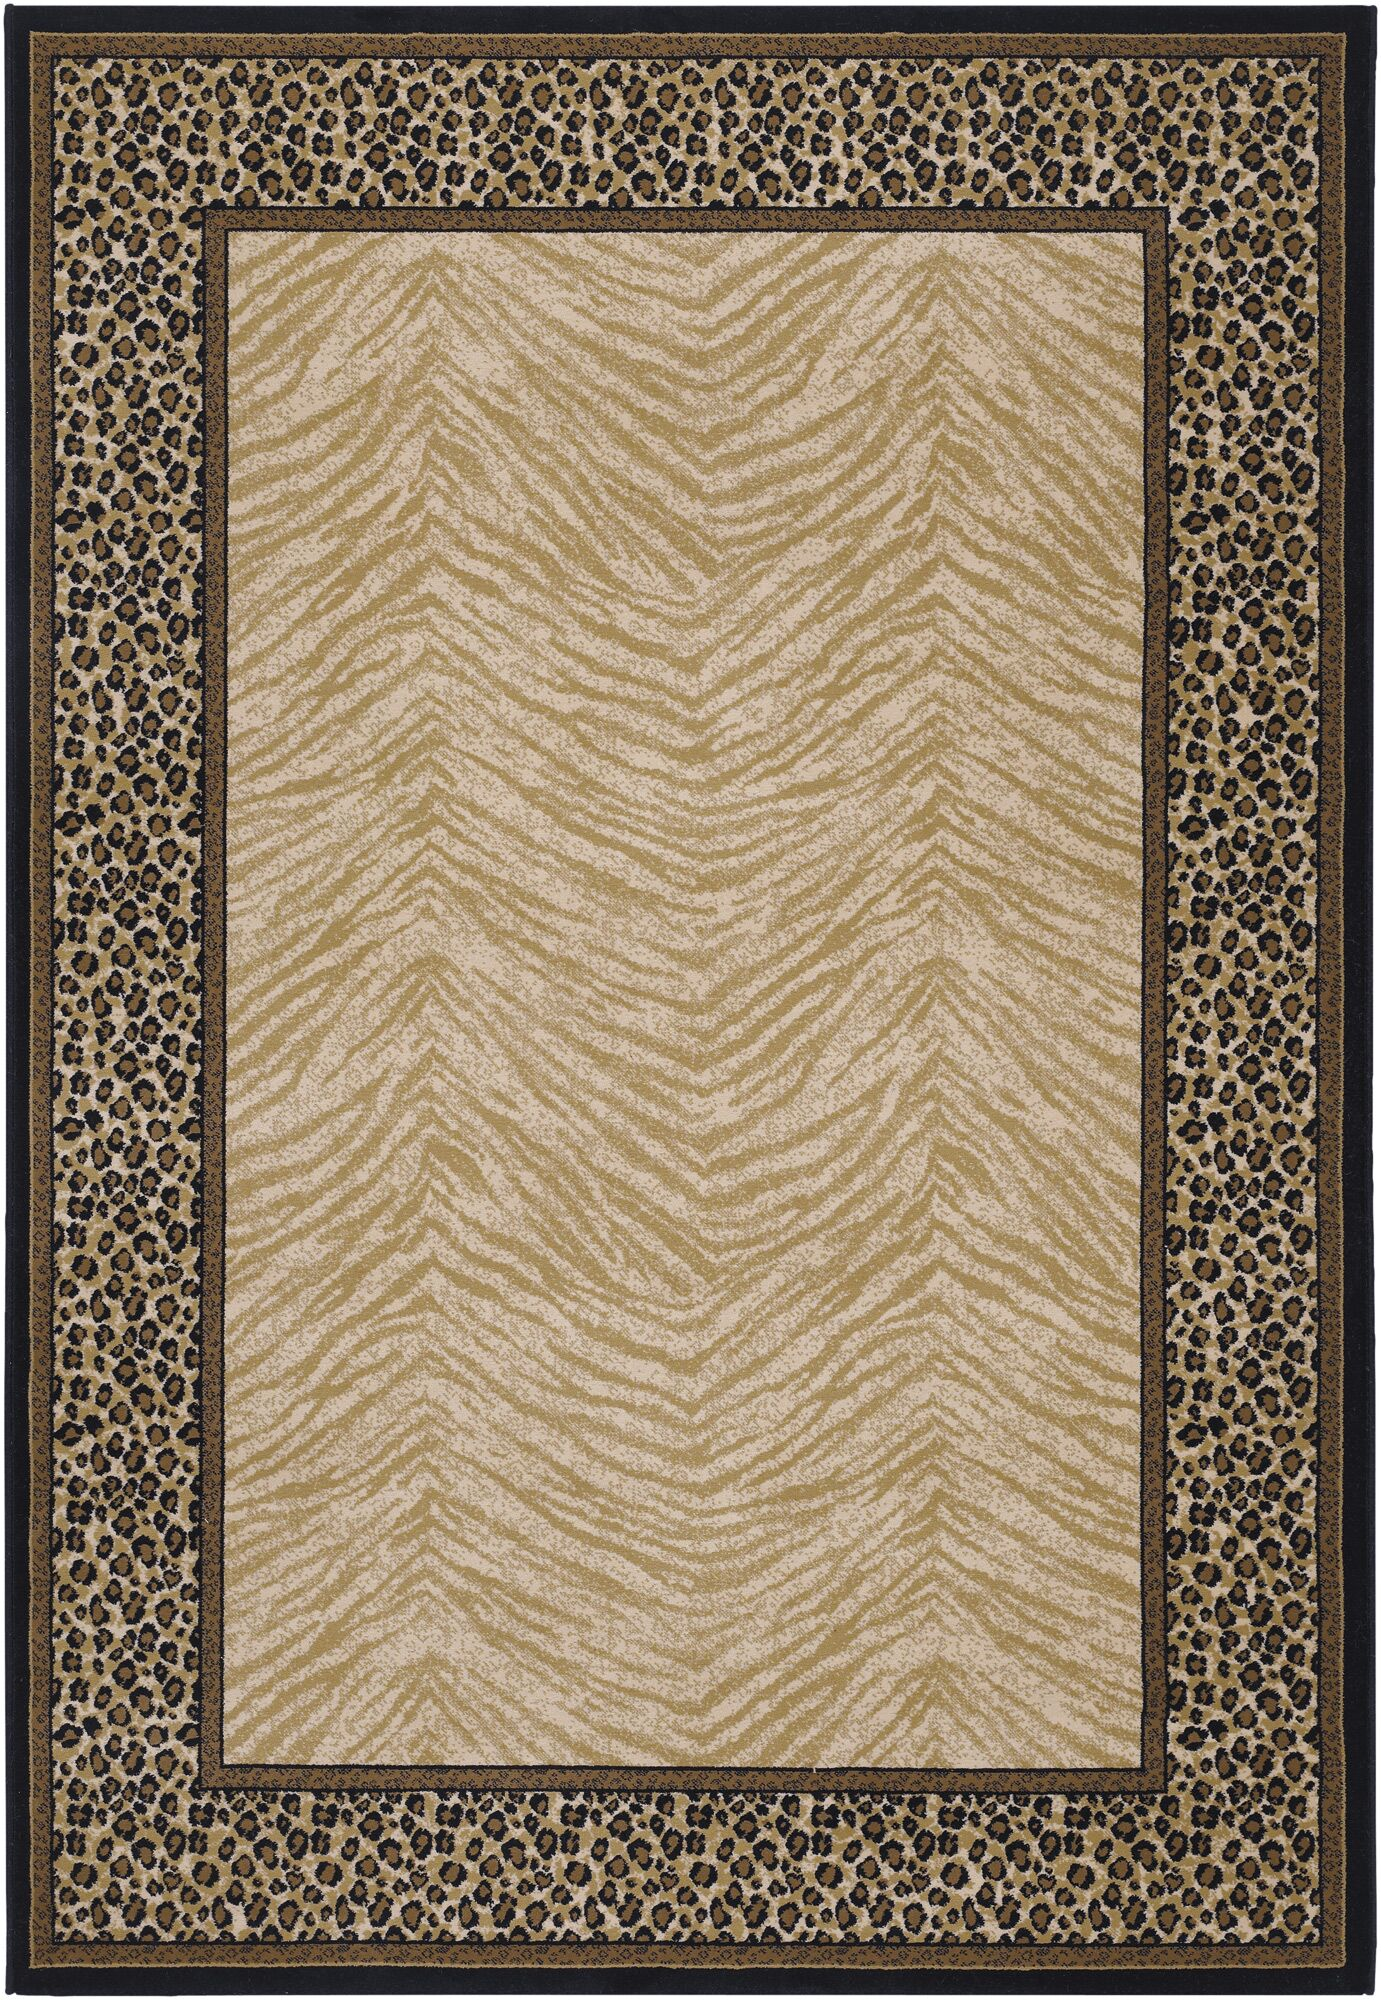 Judlaph Doeskin Area Rug Rug Size: Rectangle 9'2